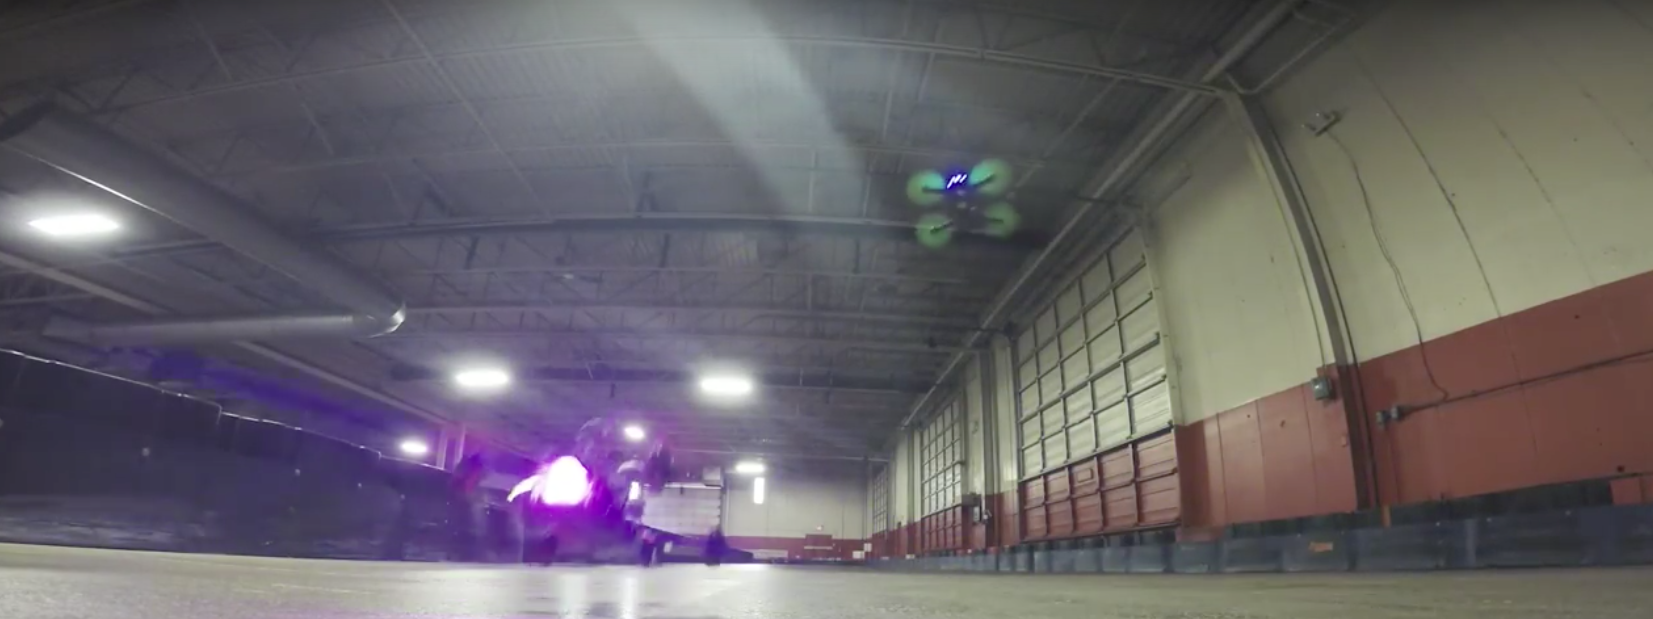 This Drone Racing Footage Will Make You Do A Sick